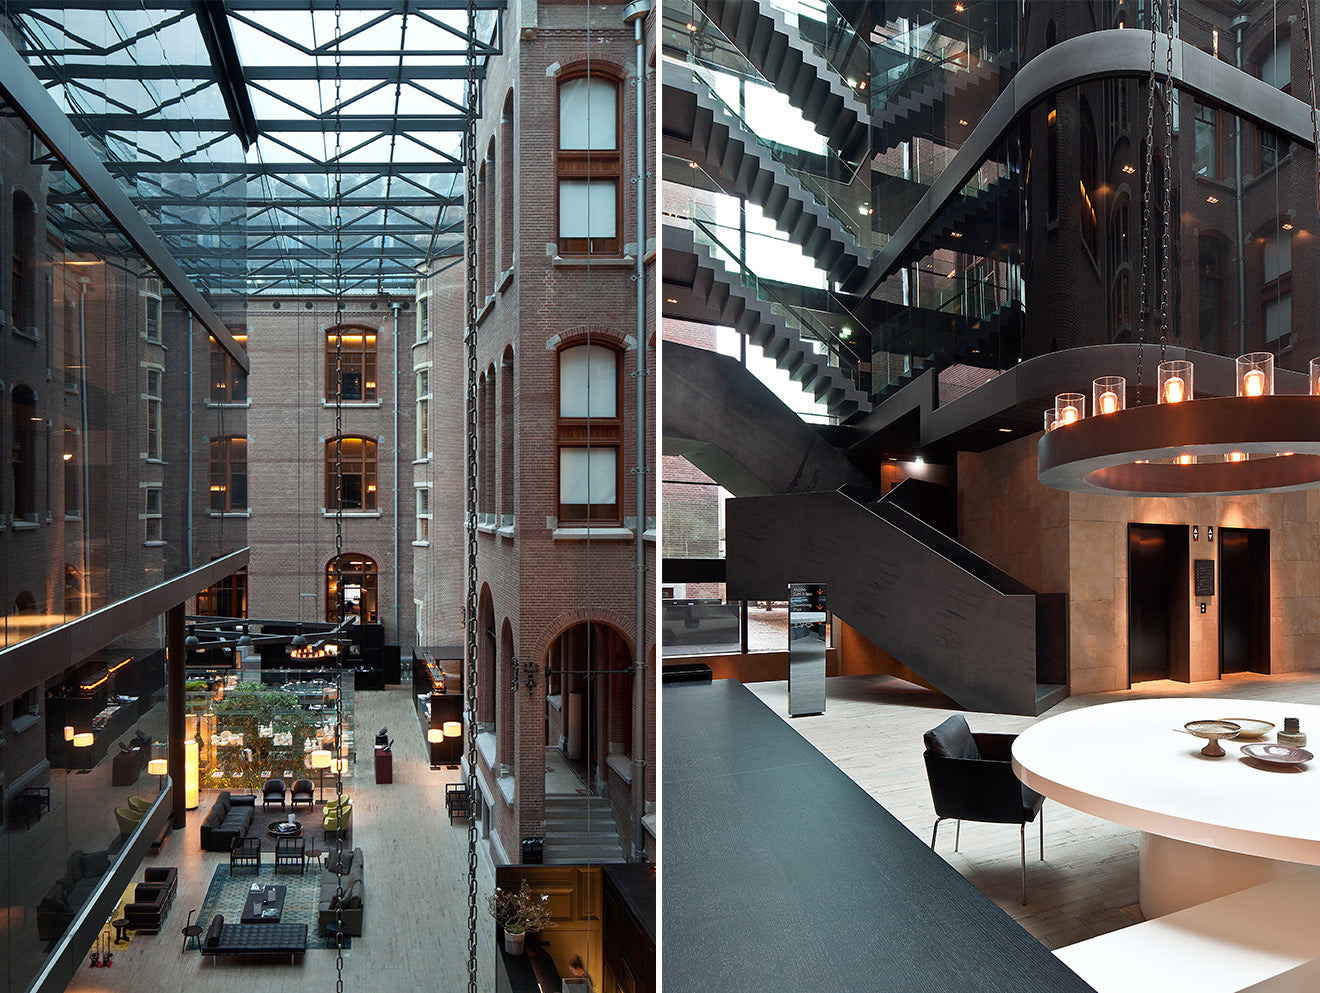 industrial interior design of the Conservatorium hotel in Amsterdam atrium and reception area